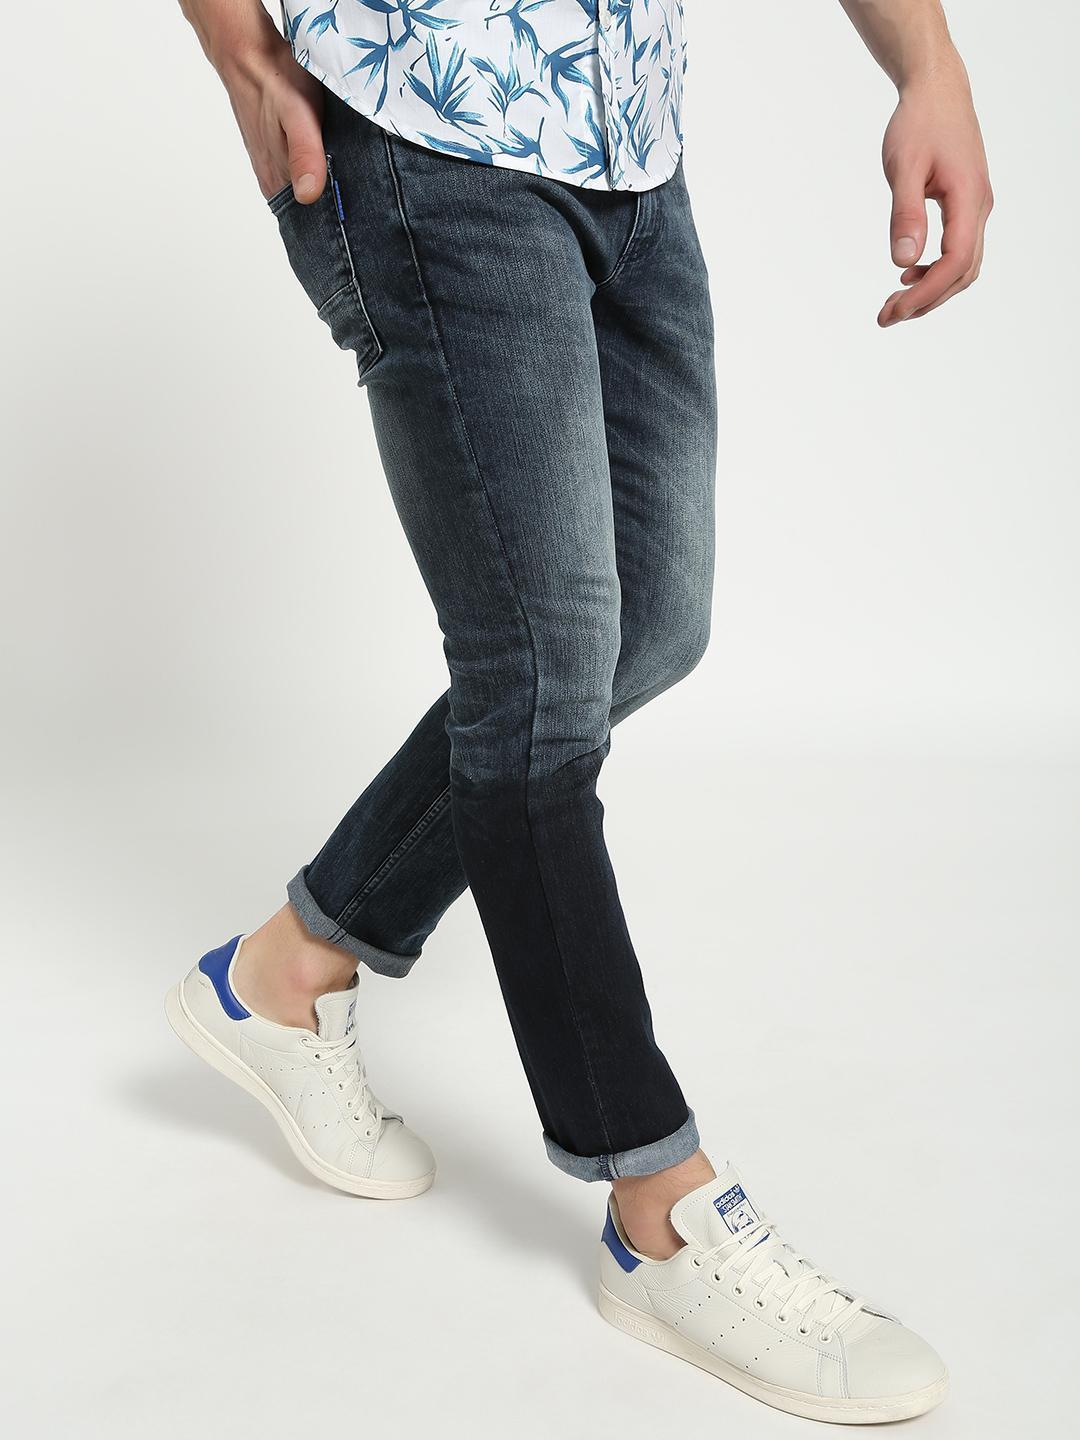 Blue Saint Blue Light Wash Slim Jeans 1